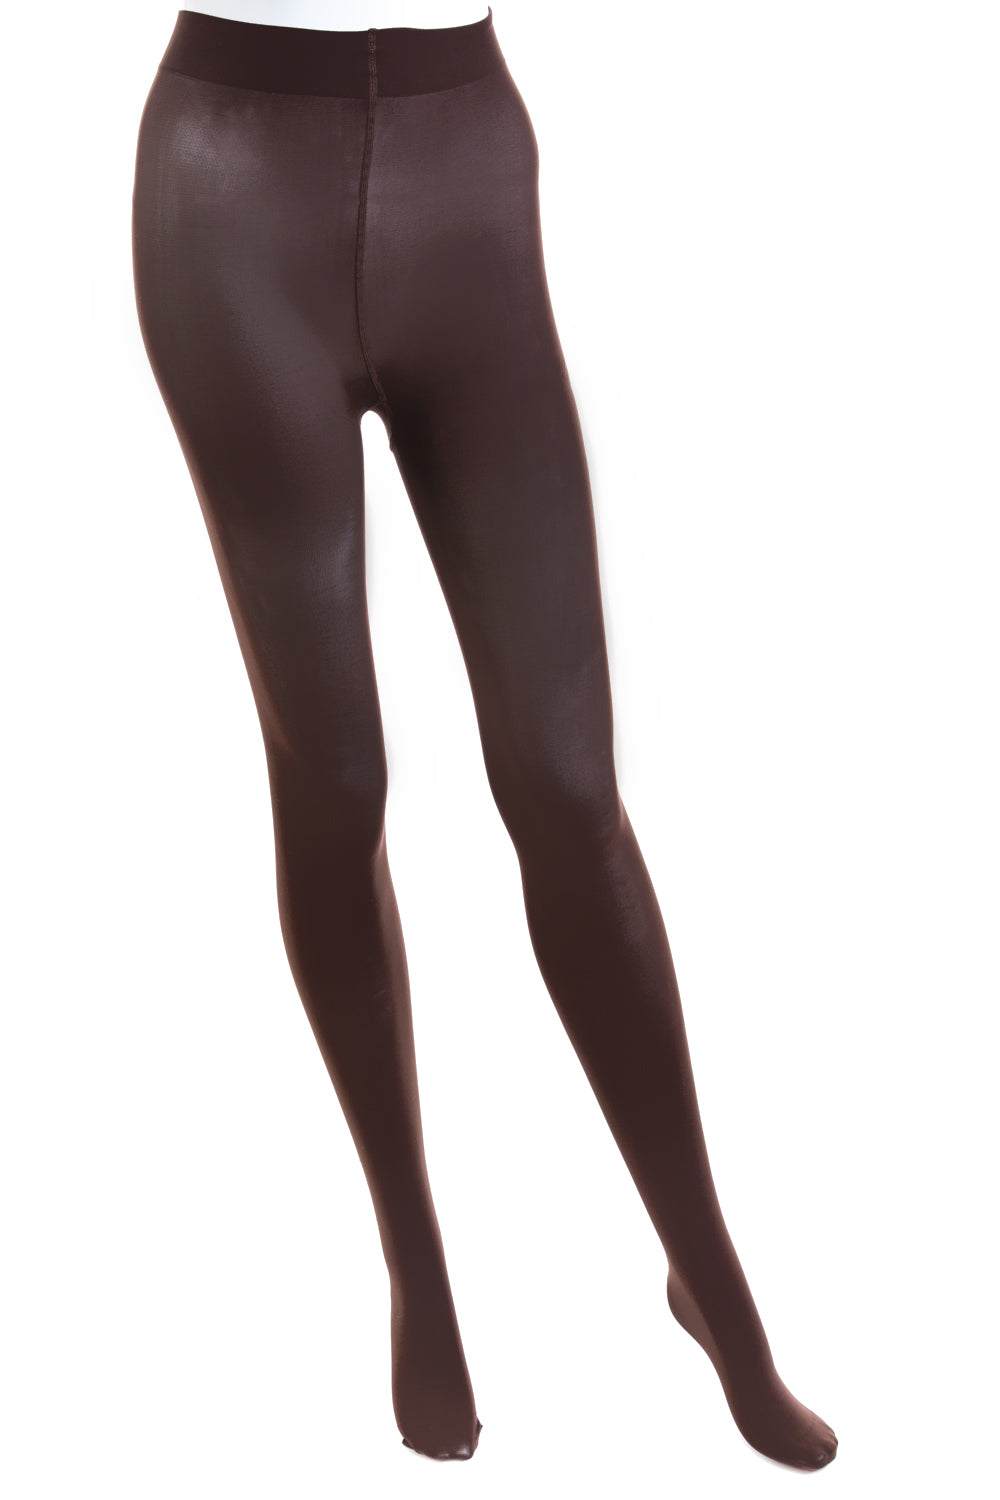 Type 2 Deep Brown Tights